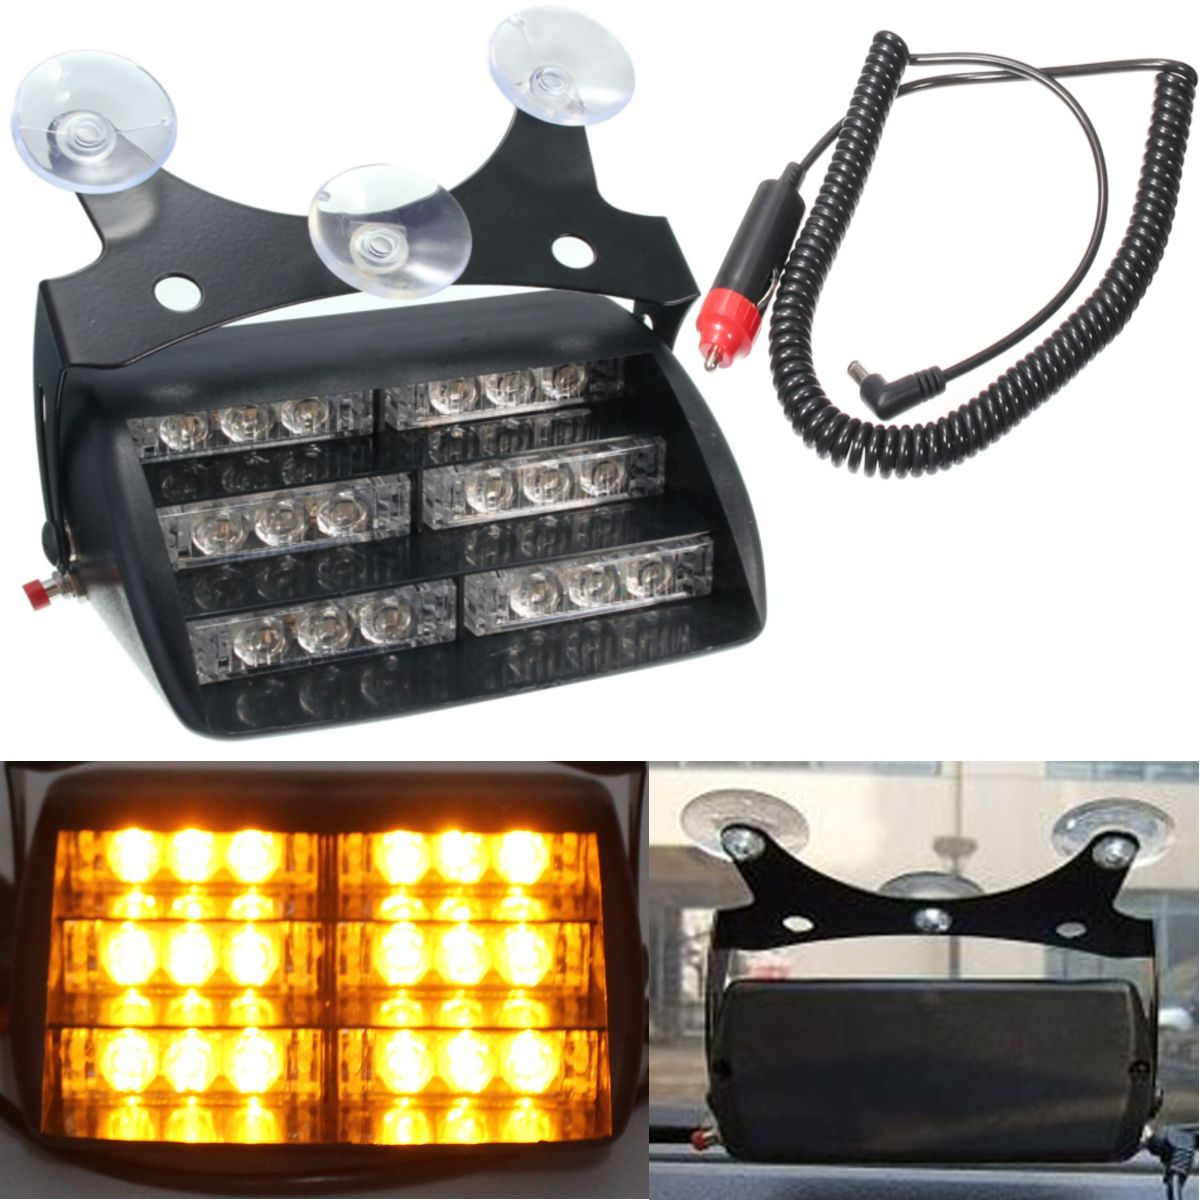 Luz Led Intermitente Coche 18 Led Amarilla Luz De Advertencia Intermitente Suv Carro De